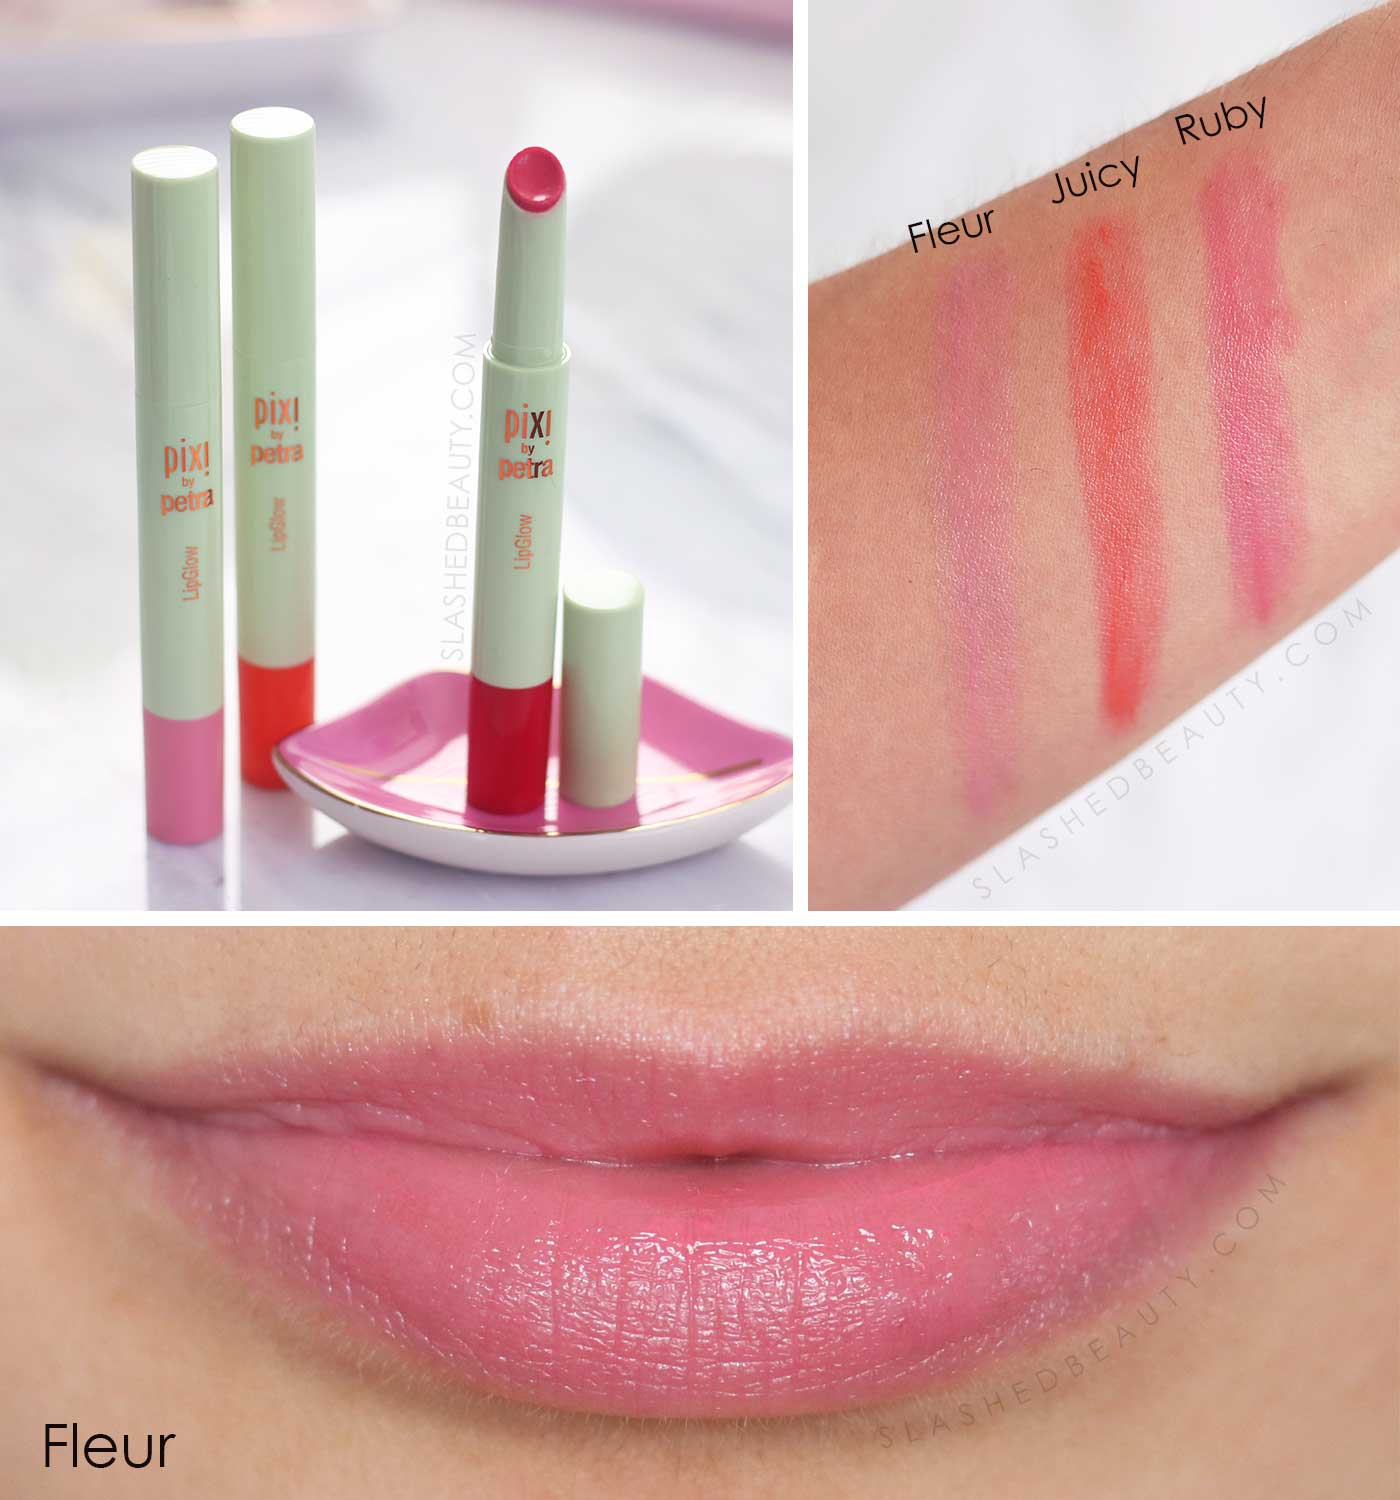 Pixi Lip Glow Swatches | Fleur, Juicy, Ruby | 5 Best Drugstore Tinted Lip Balms | Slashed Beauty